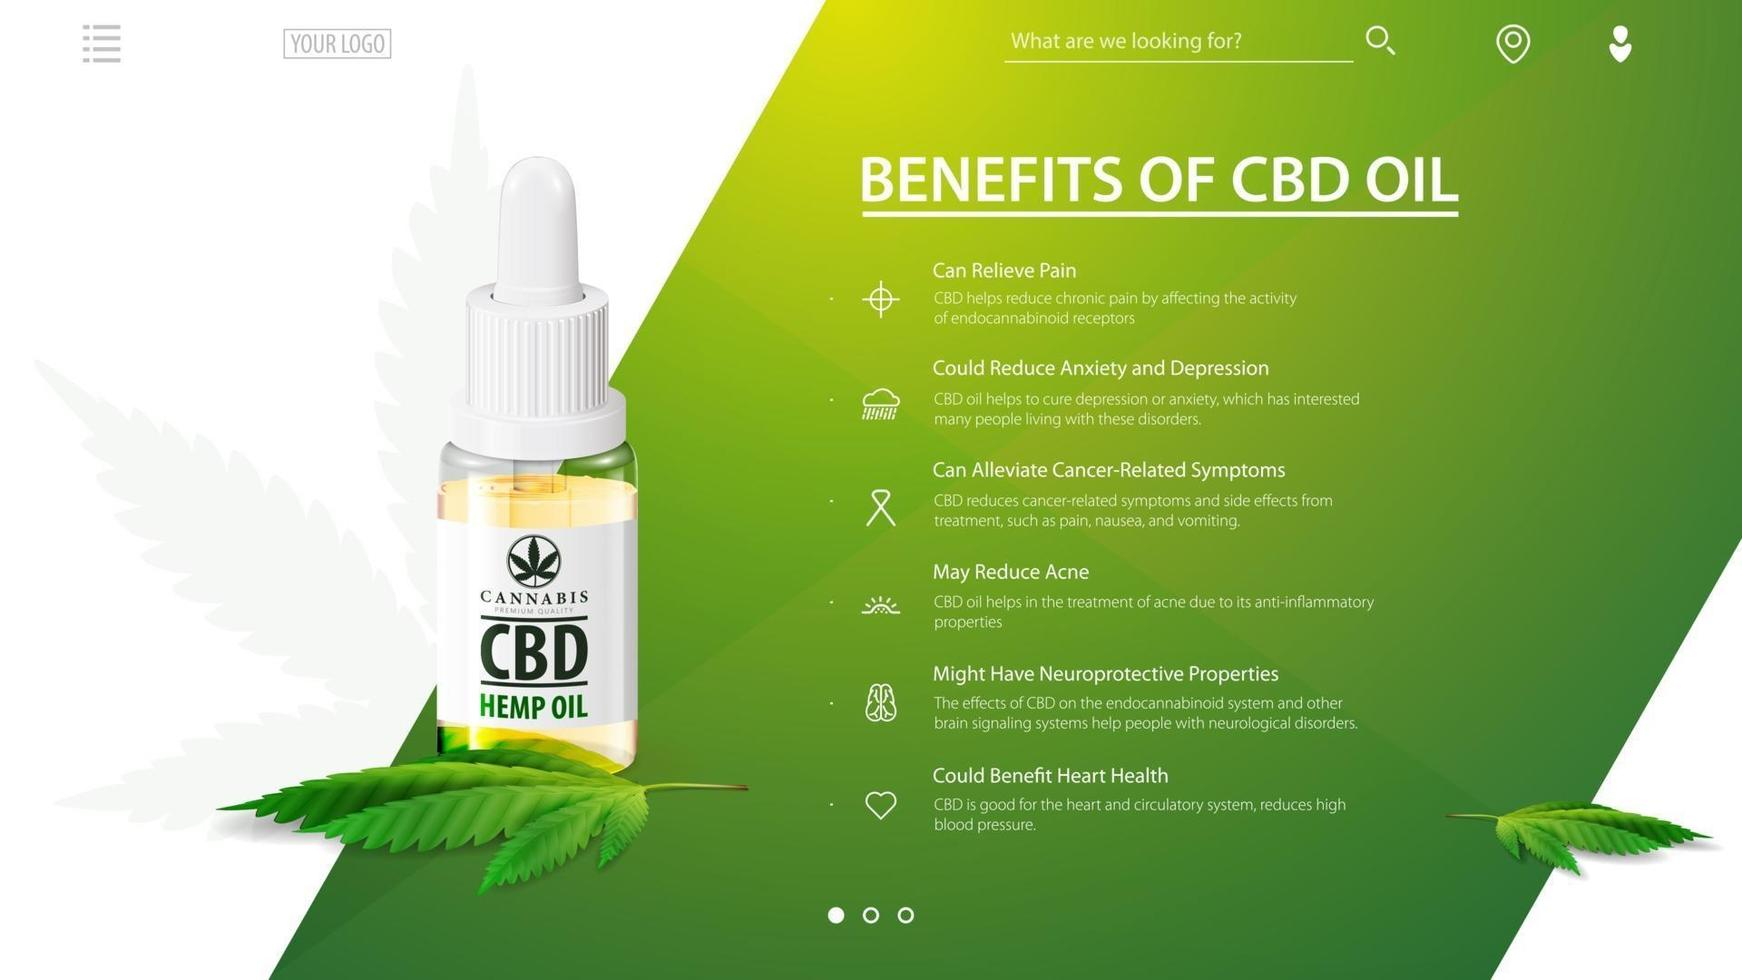 Green And White Template Of Medical Uses For Cbd Oil Benefits Of Use Cbd Oil Web Banner With Glass Bottle Of Cbd Oil And Hemp Leaf With Pipette Download Free Vectors